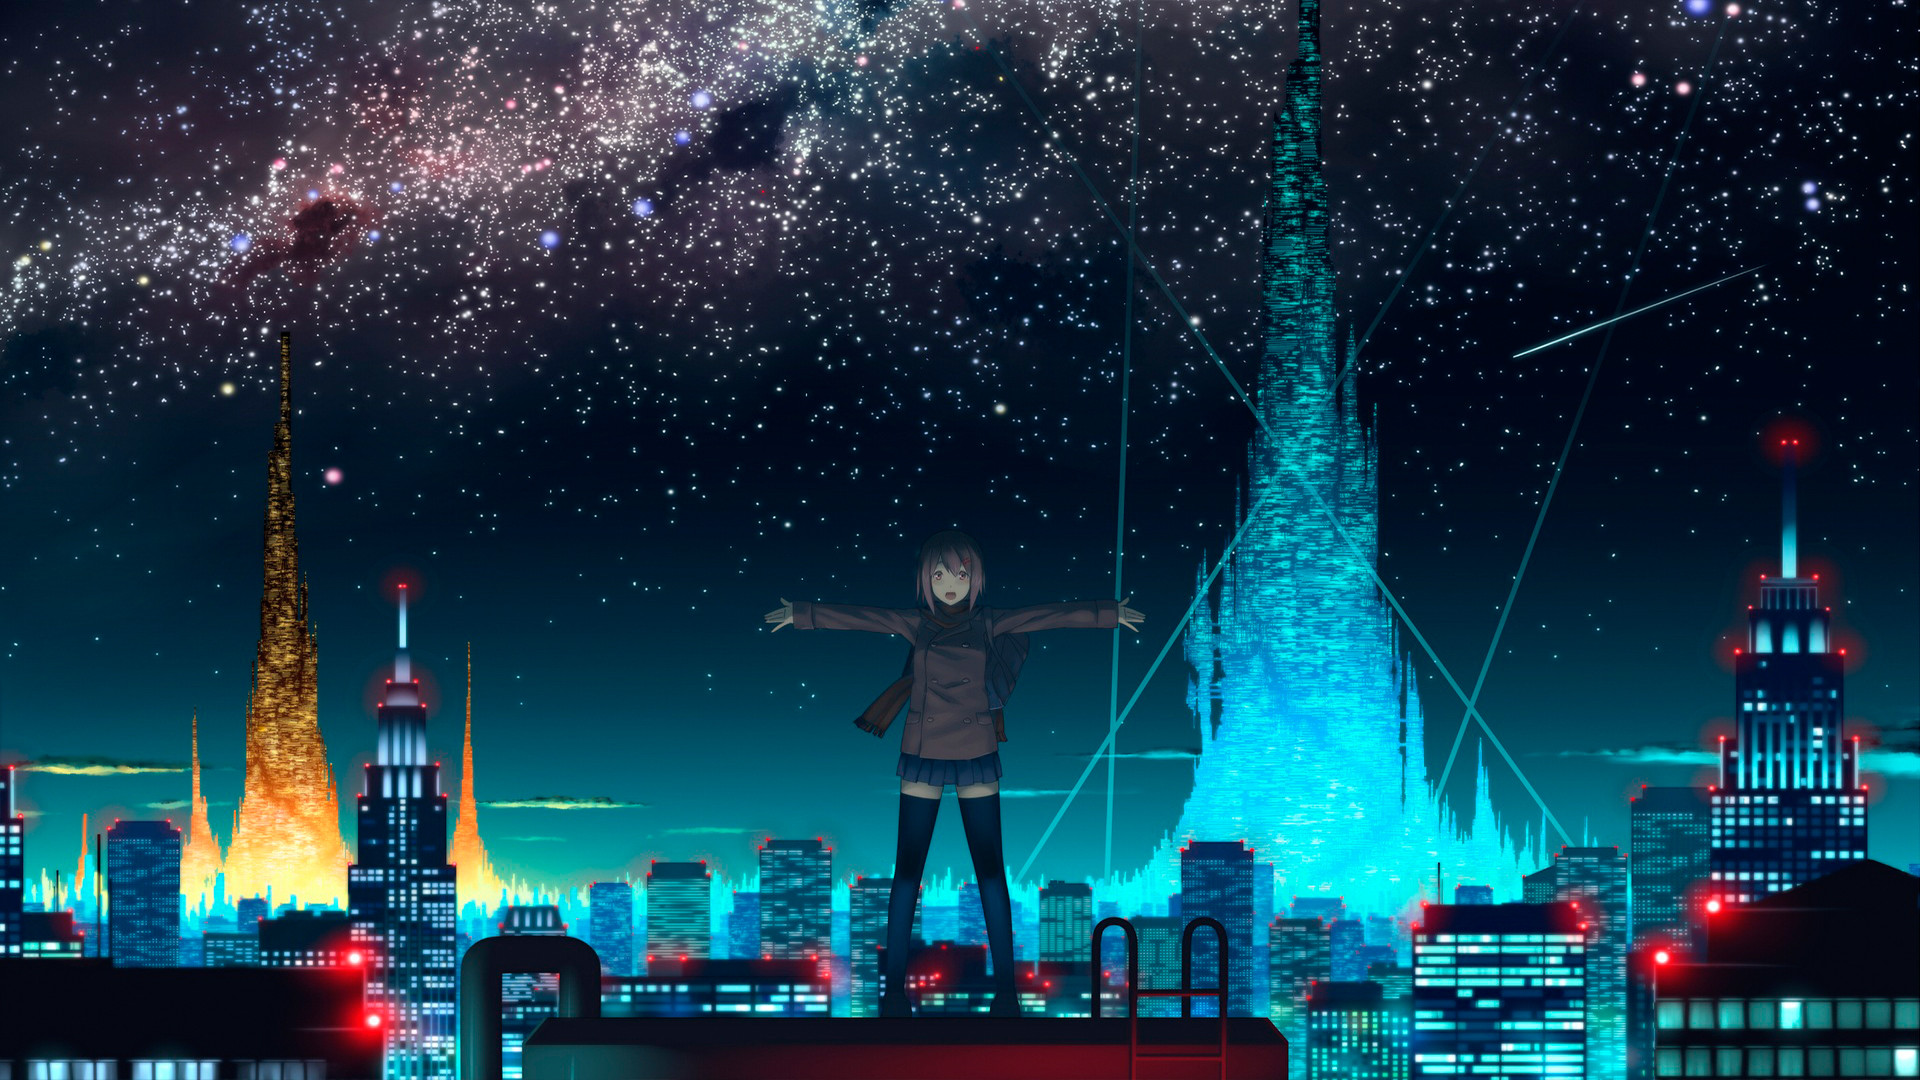 0 Hd Anime Wallpapers Collection Old Anime Wallpaper#39s (Full HD) |  04.04.15 file | Indie